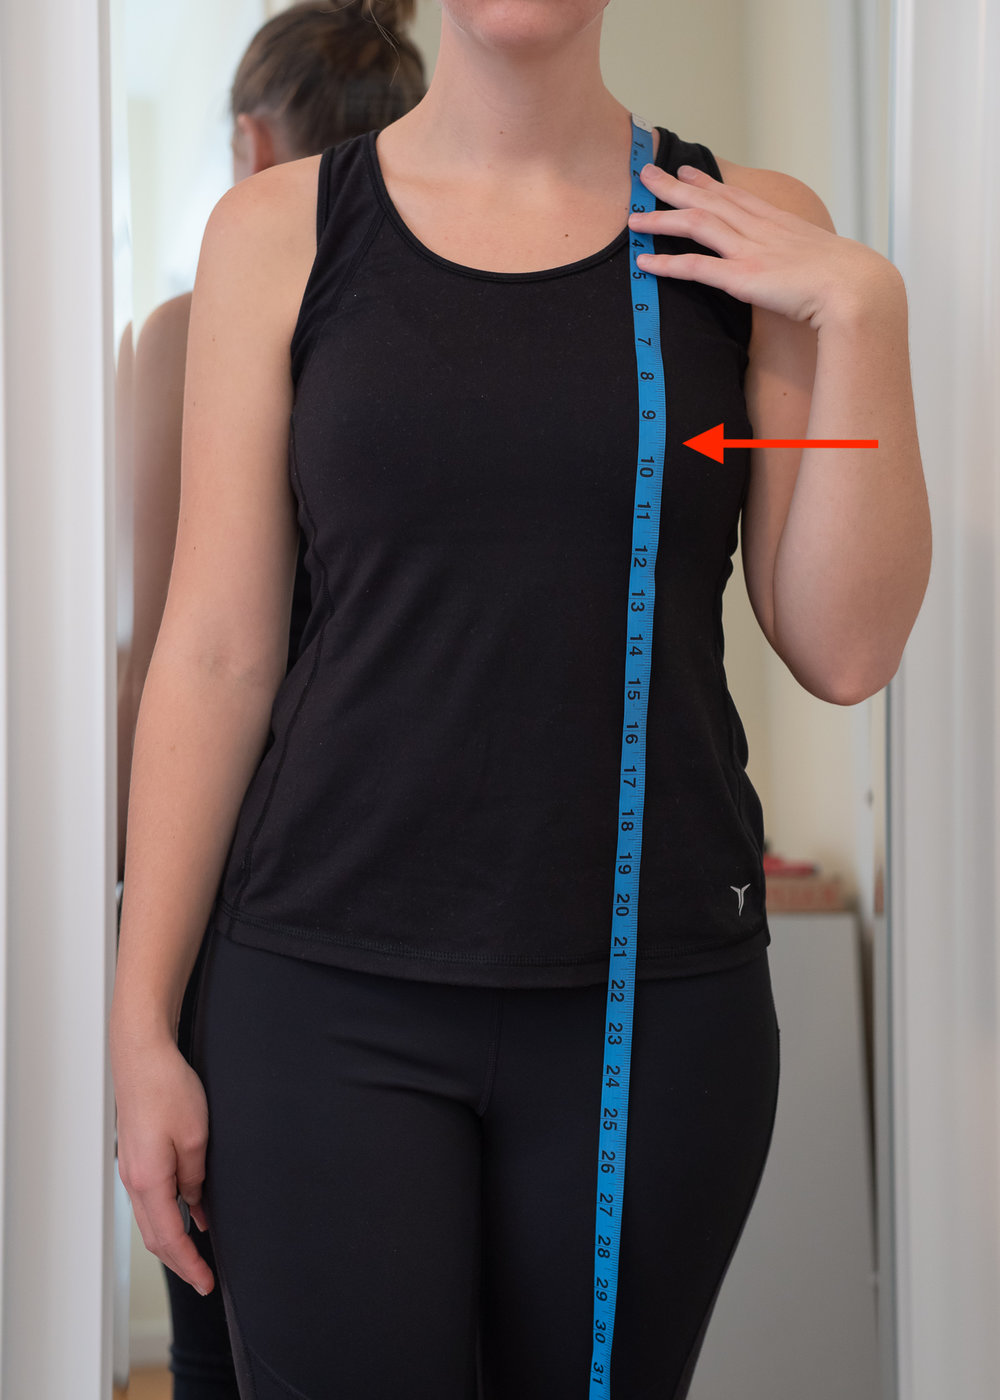 How to take your High Point of Shoulder to Bust Measurement